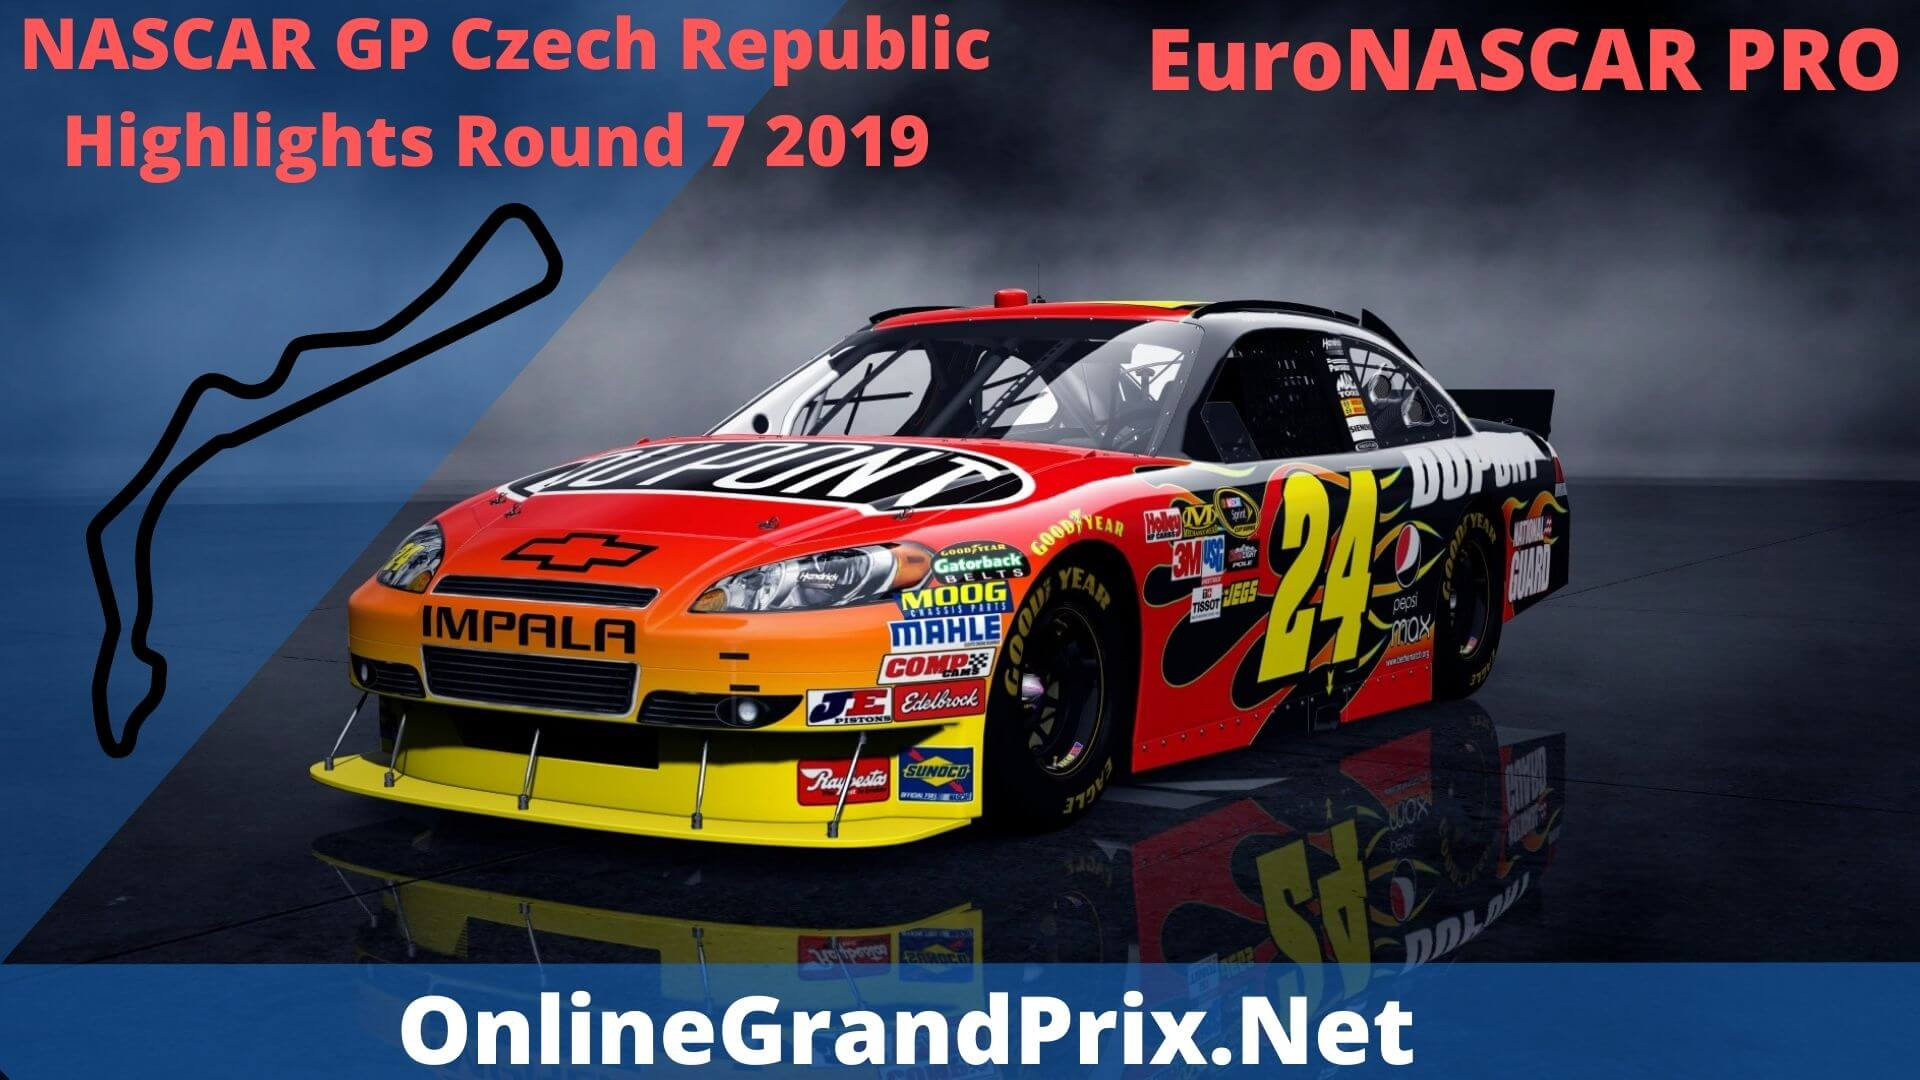 NASCAR GP Czech Republic Round 7 Highlights 2019